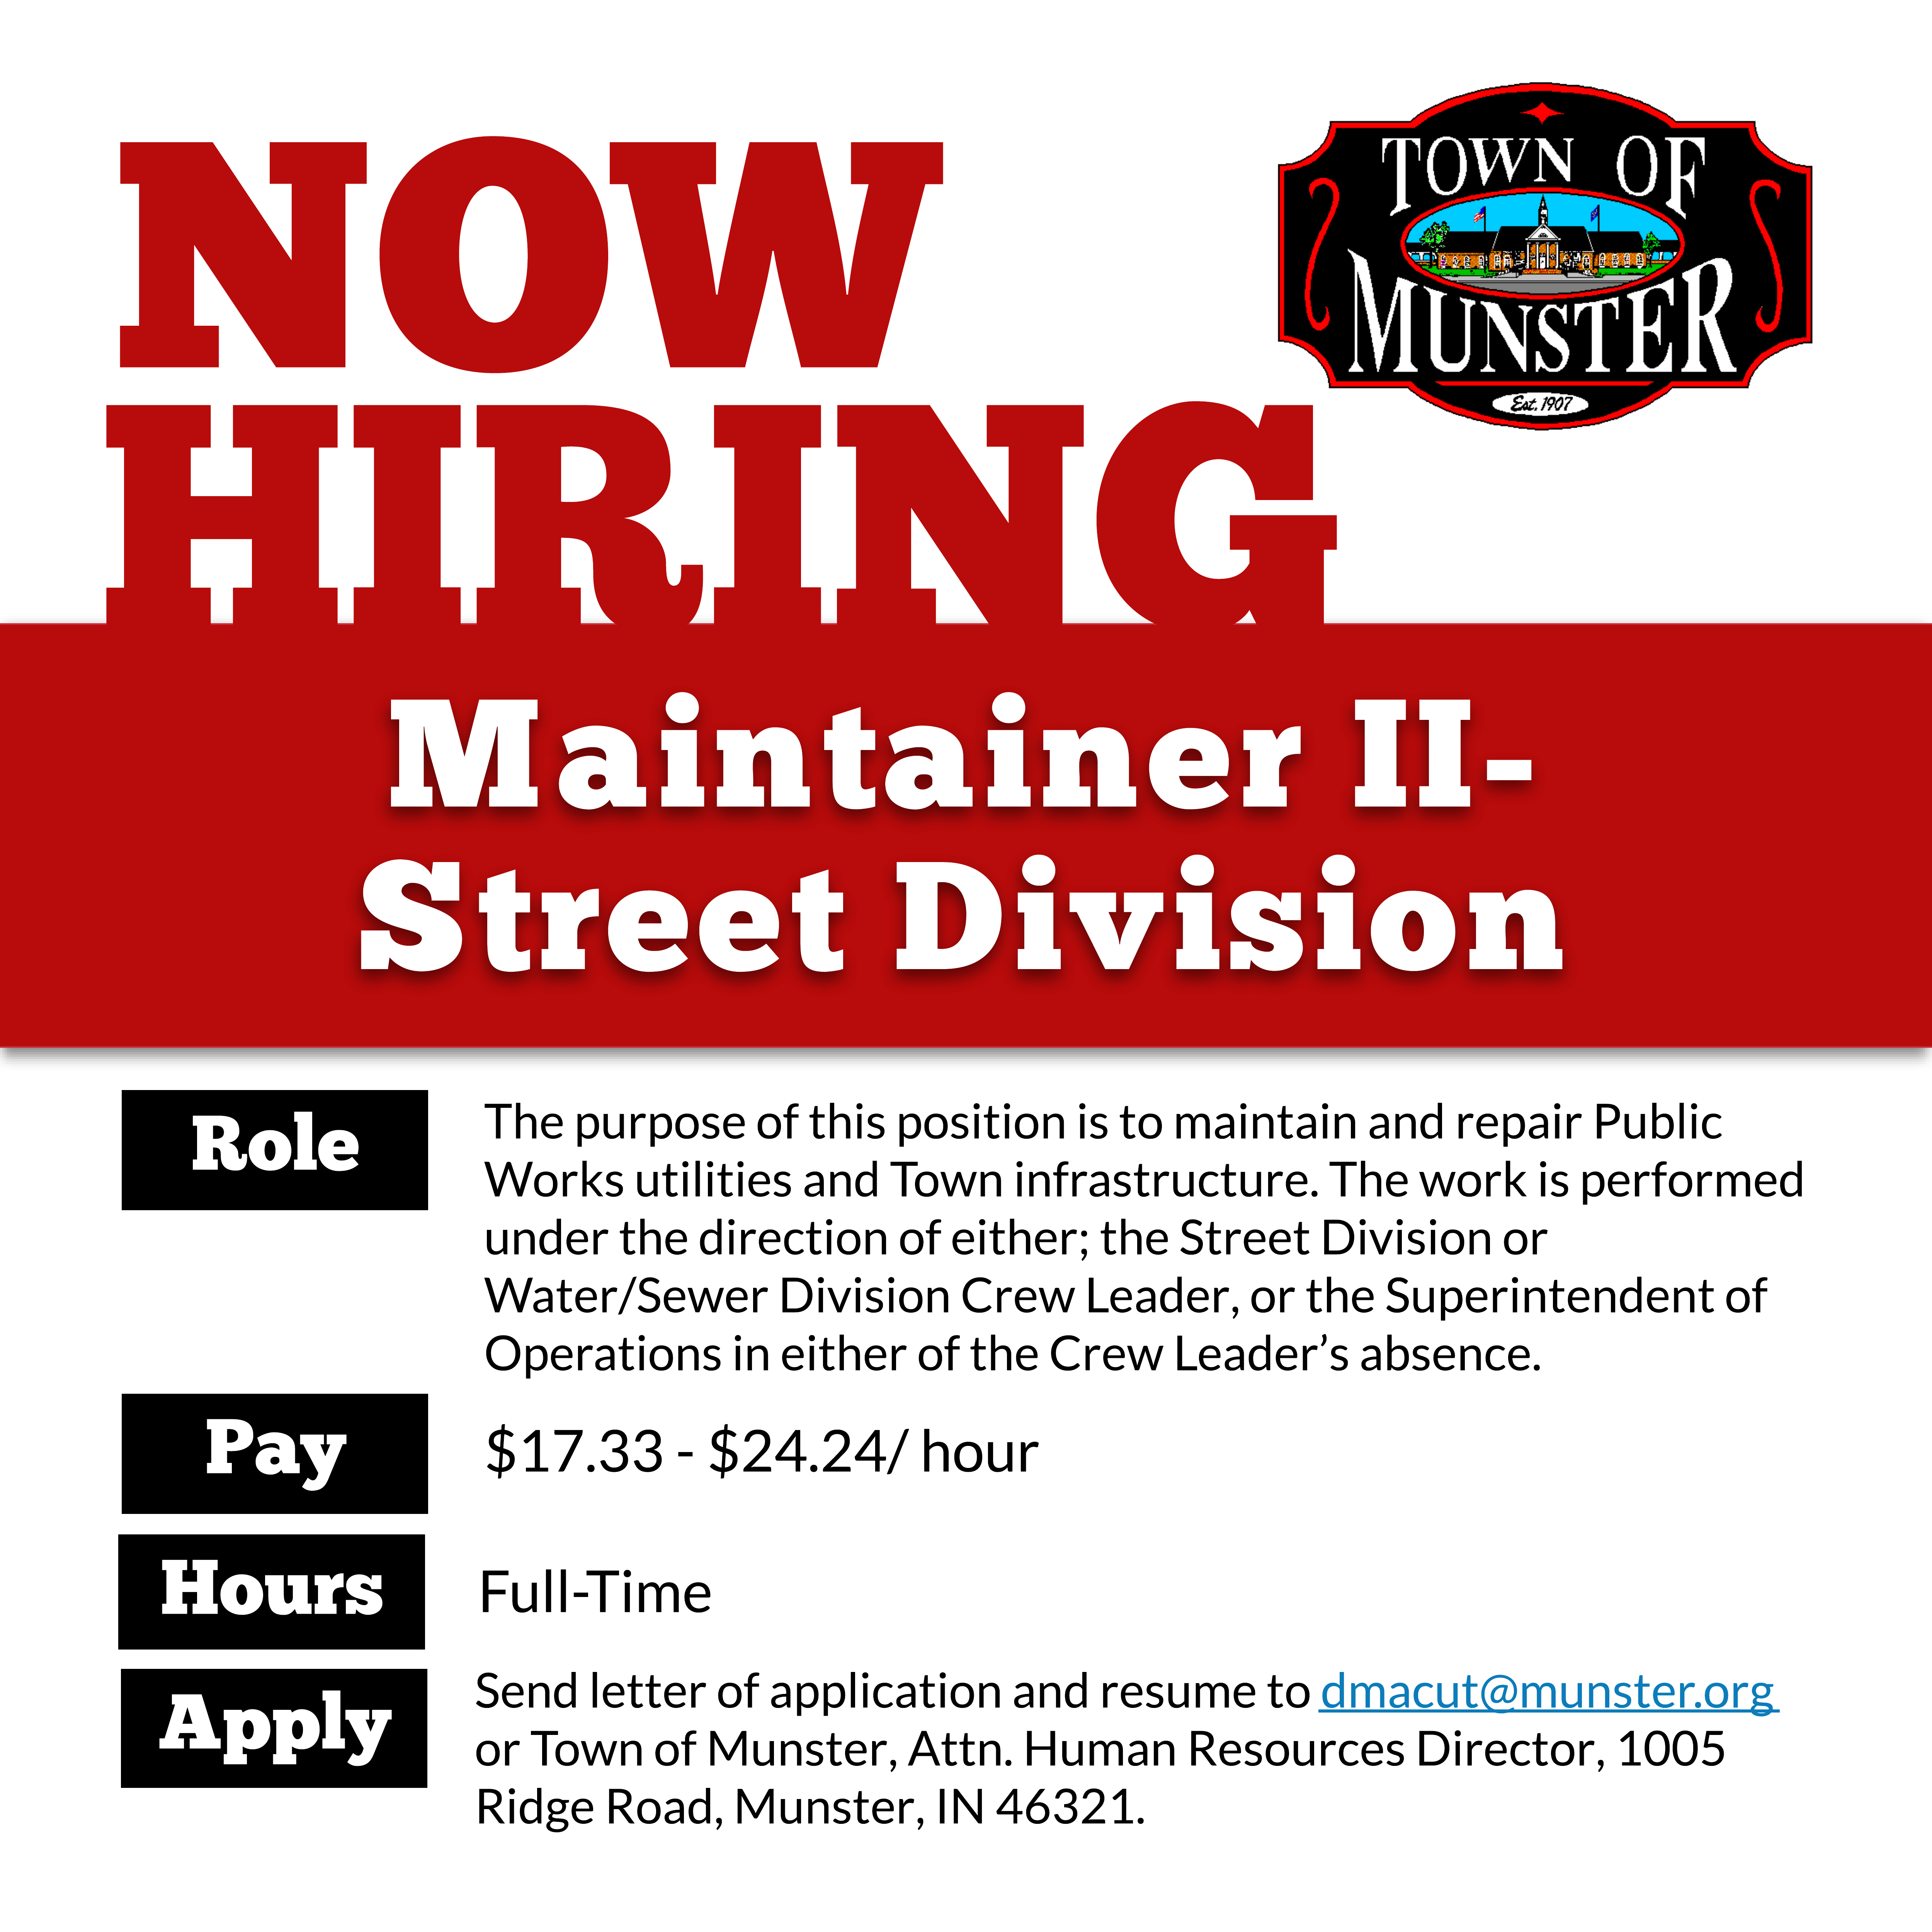 Image for news story: Now Hiring: Maintainer II - Street Division